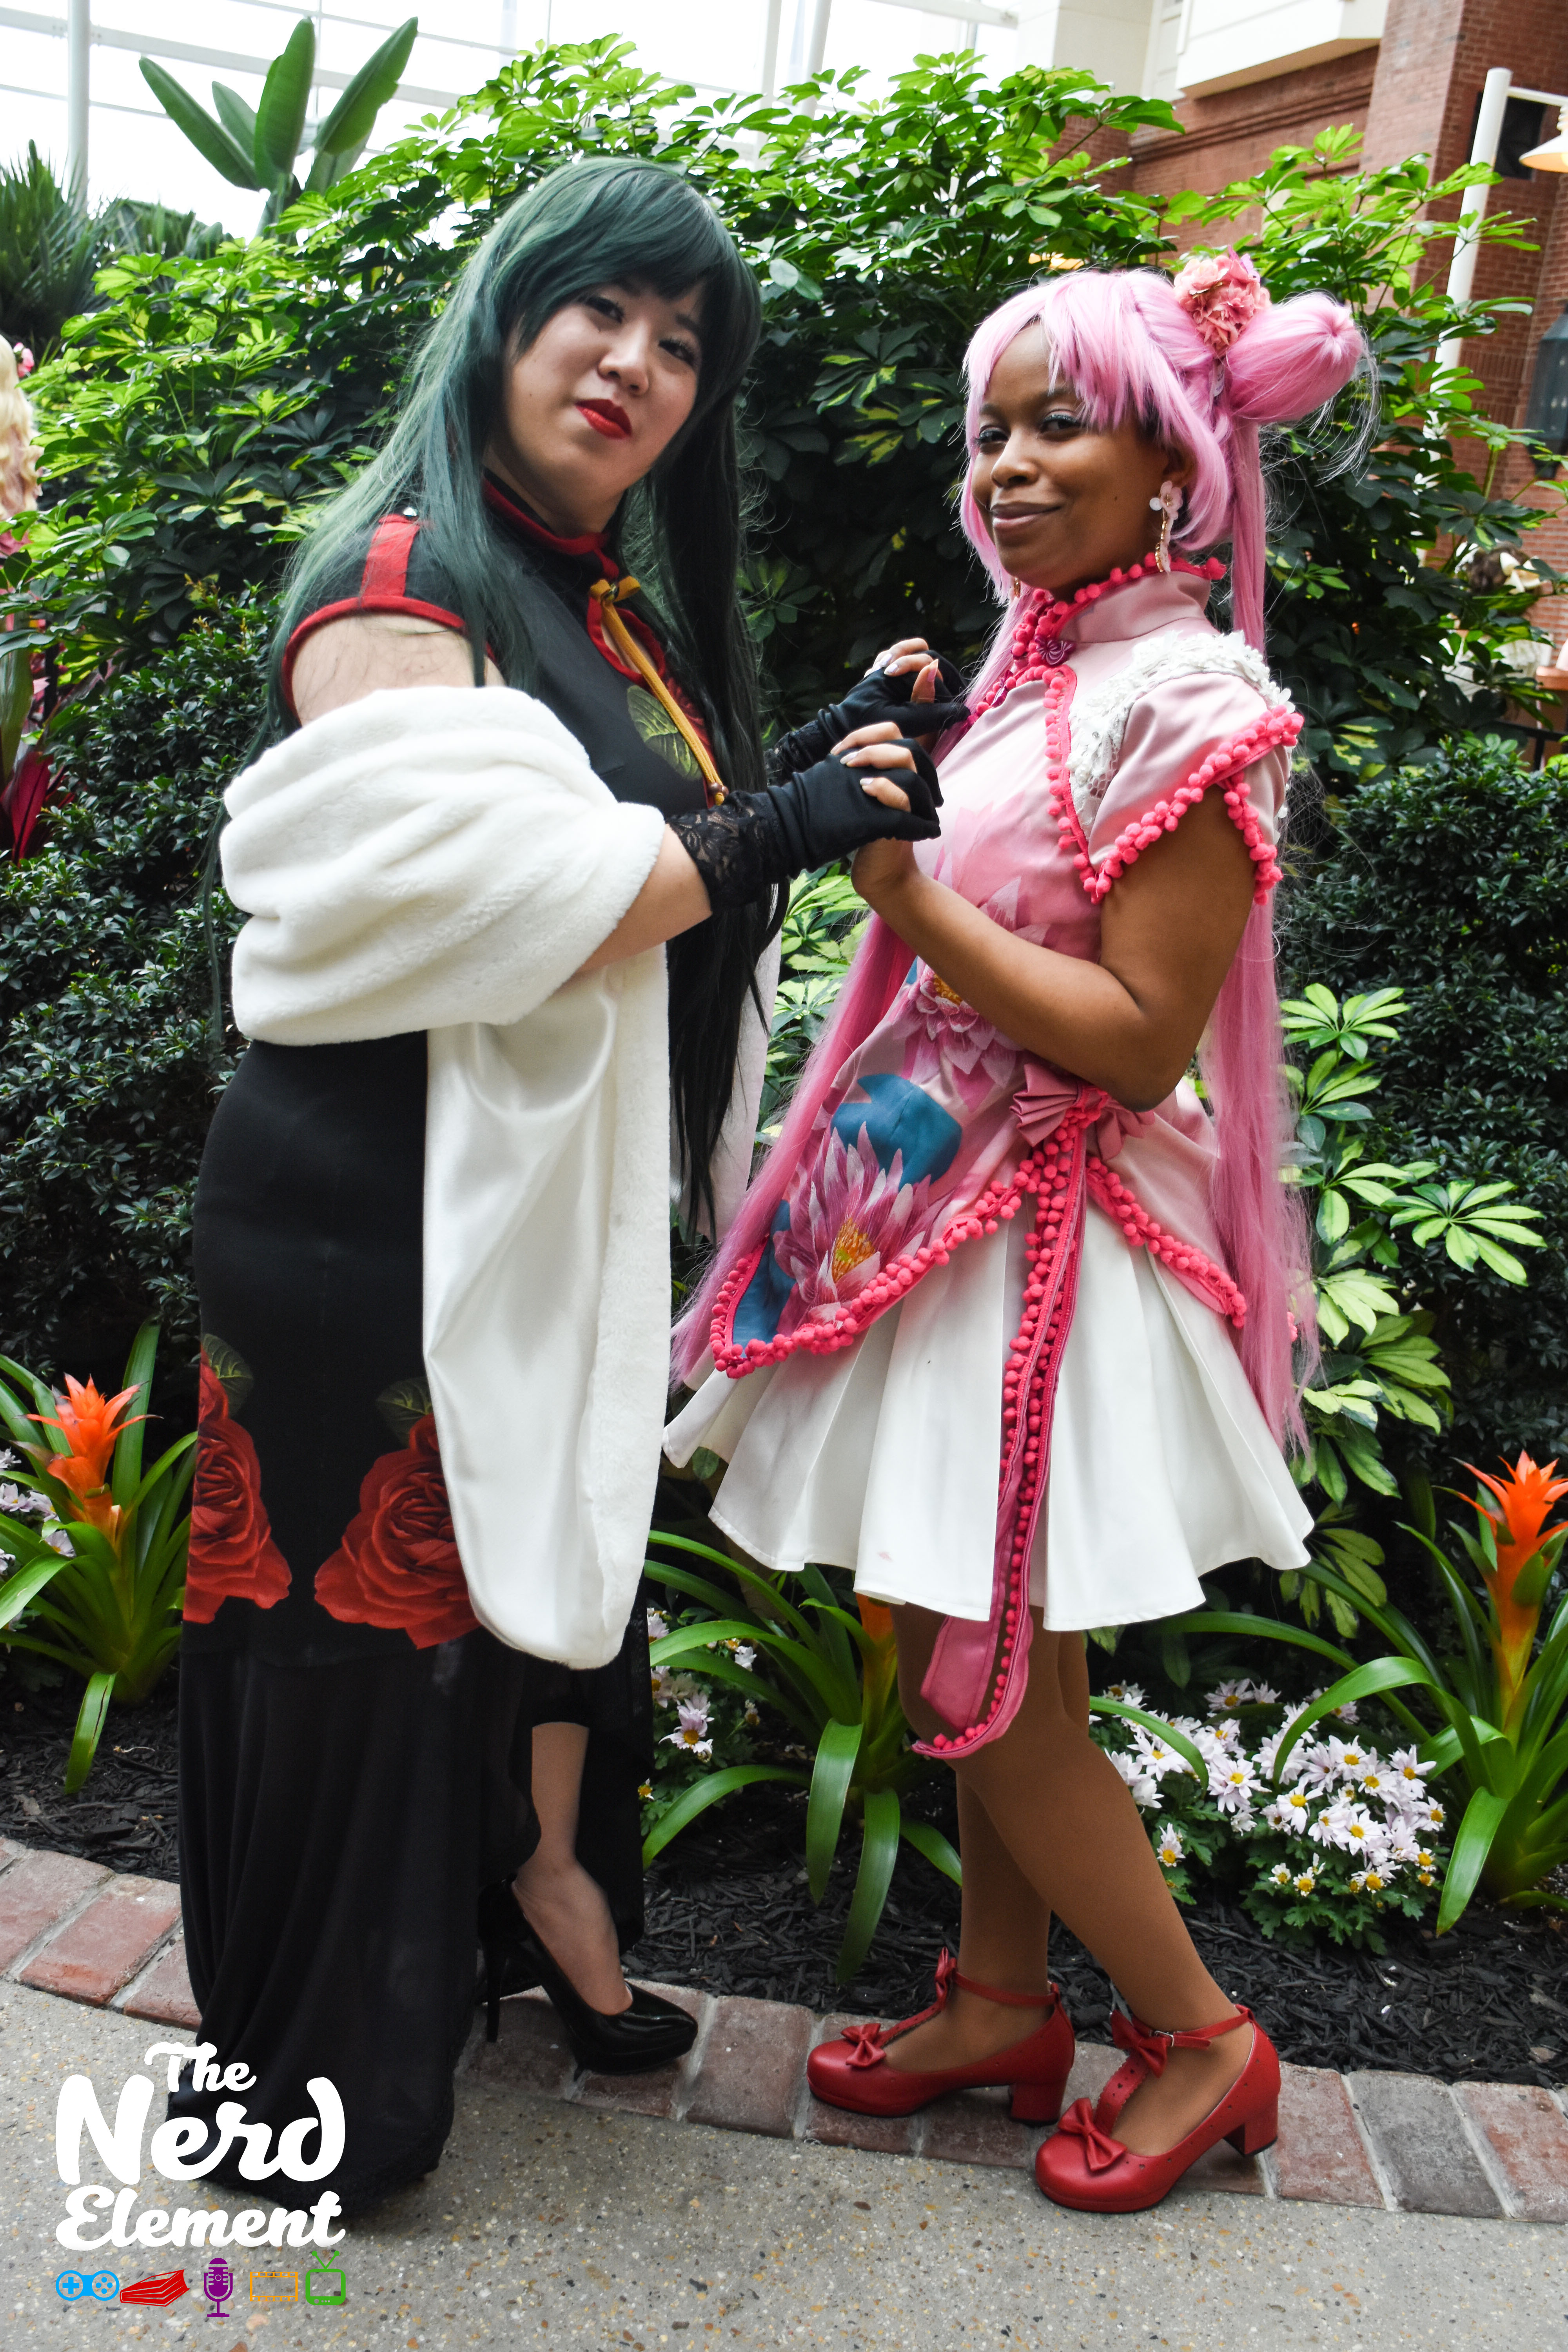 Sailor Pluto and Sailor Chibi Moon Cosplayers: zhennnie (ig) and silvercrescentcosplay (ig)